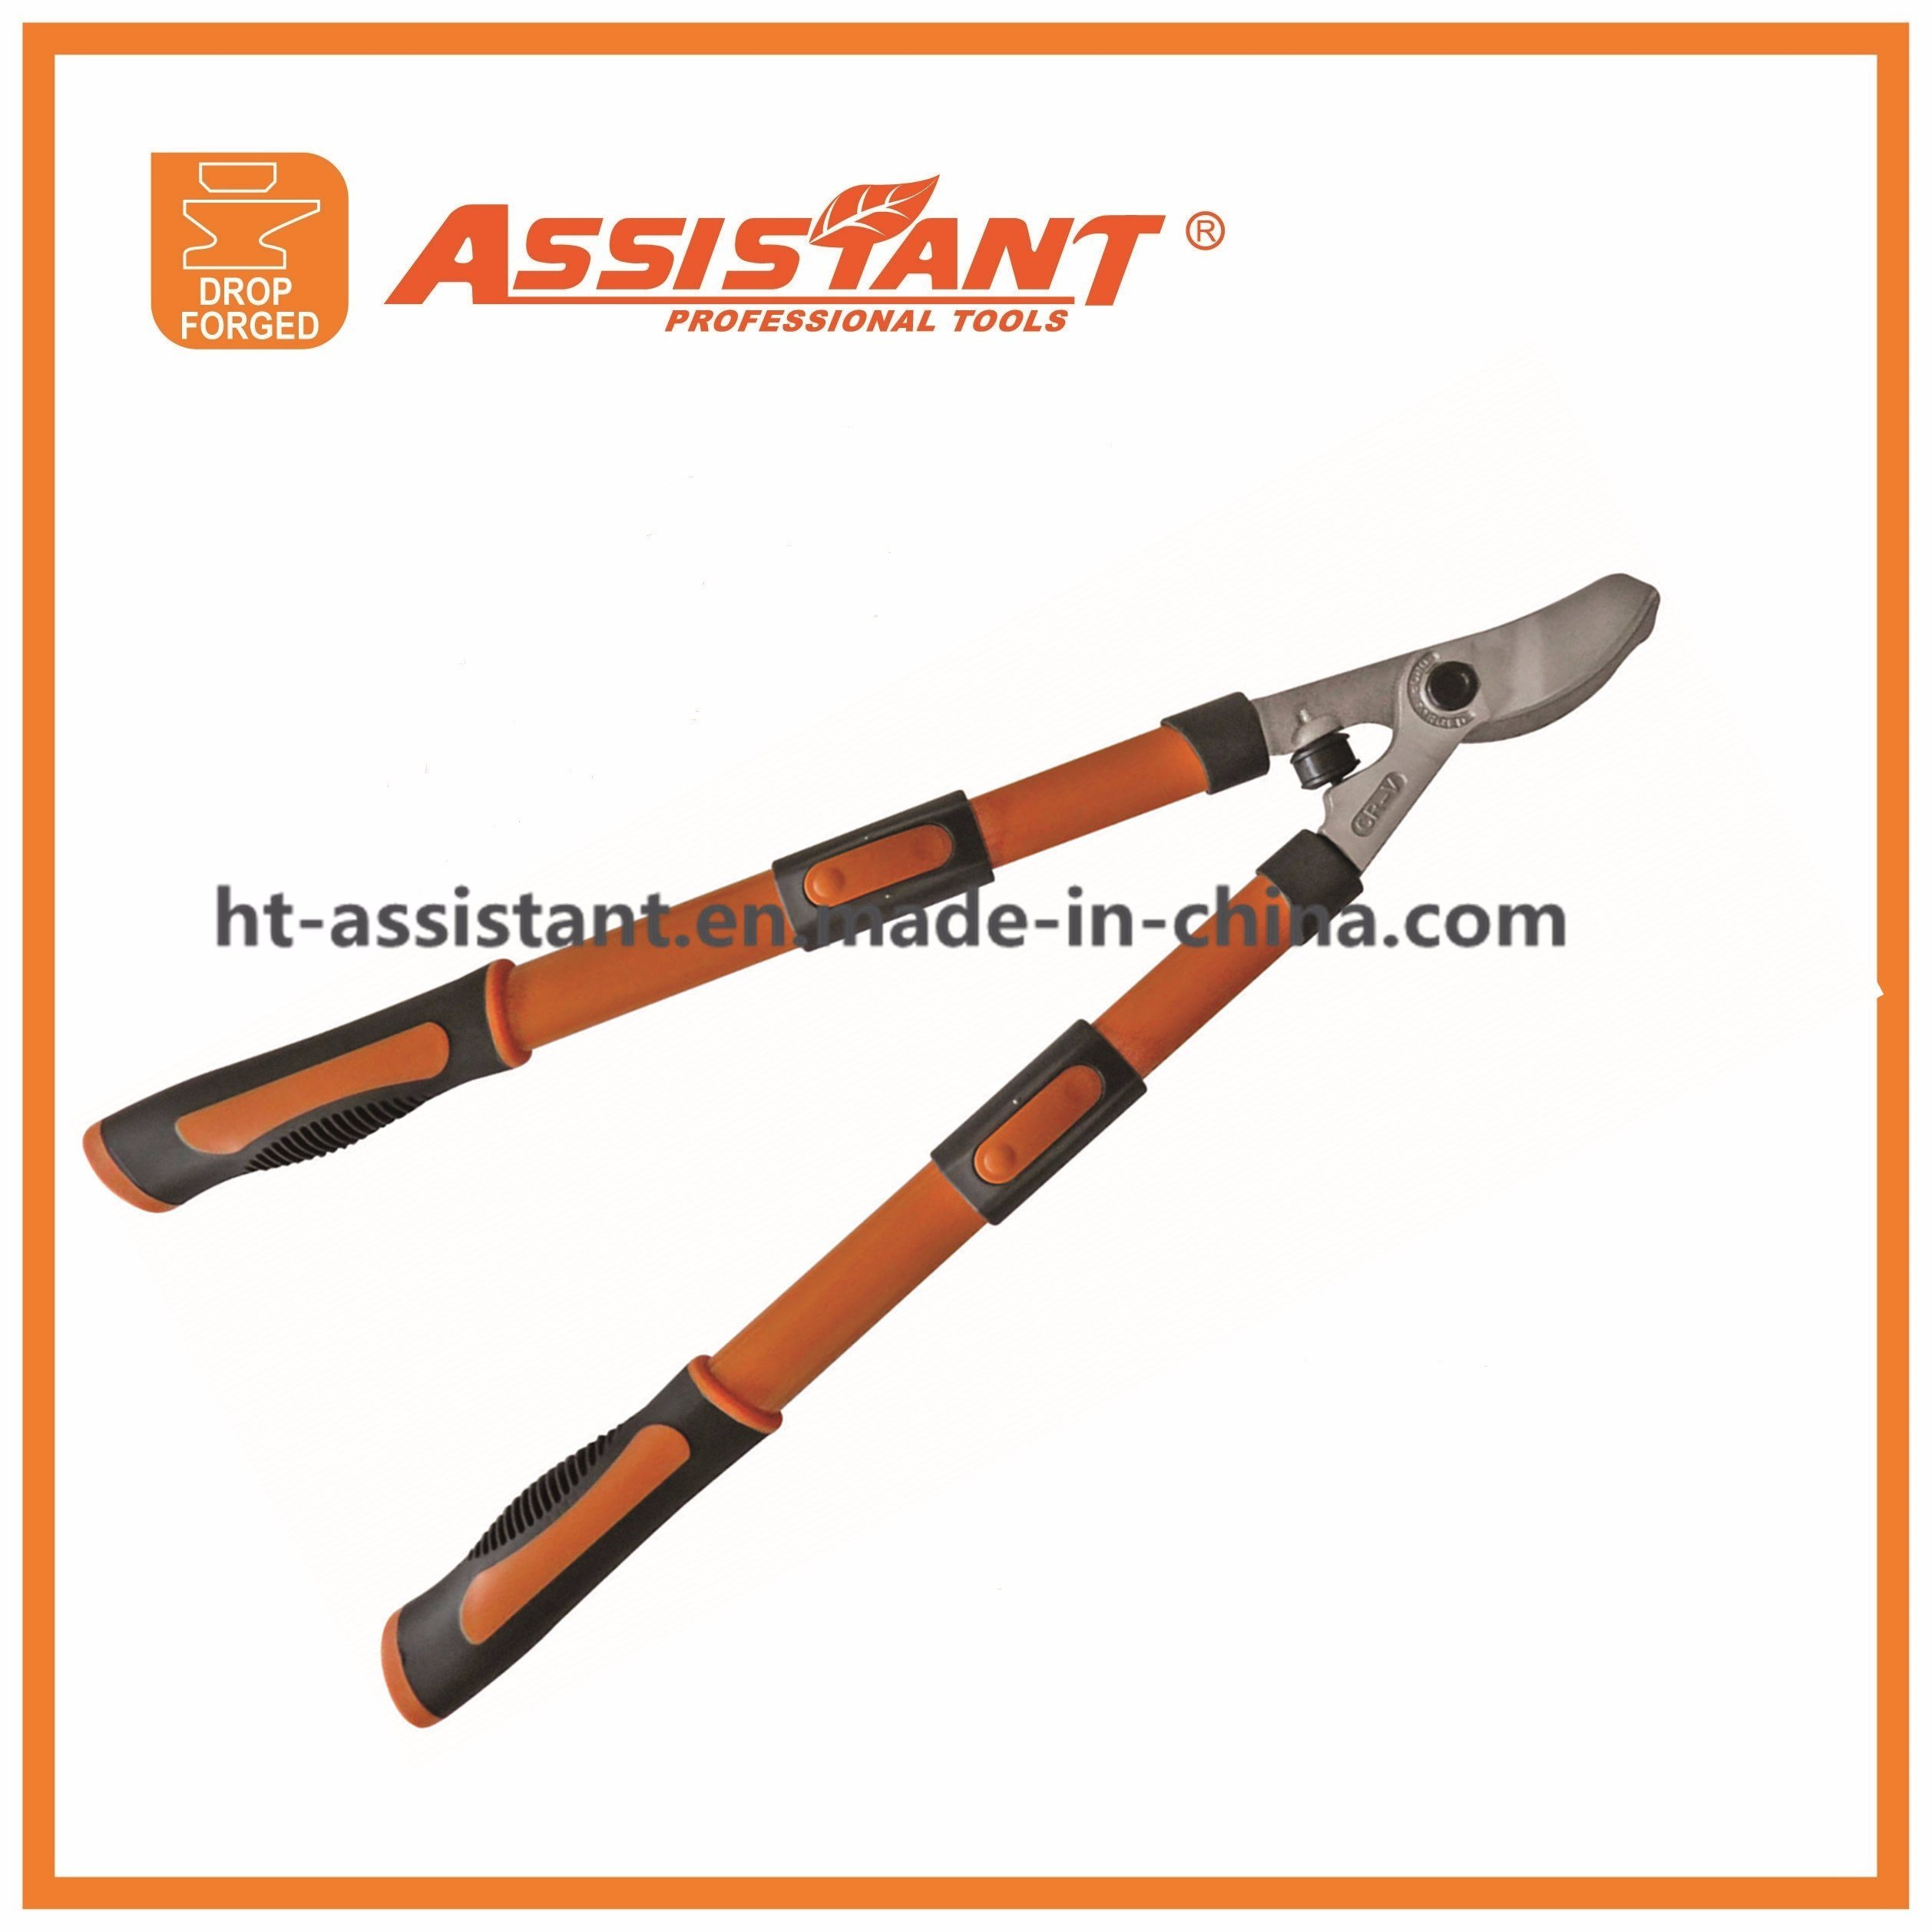 Extendable Lopping Shears Landscape Orchard Drop Forged Pruning Bypass Loppers